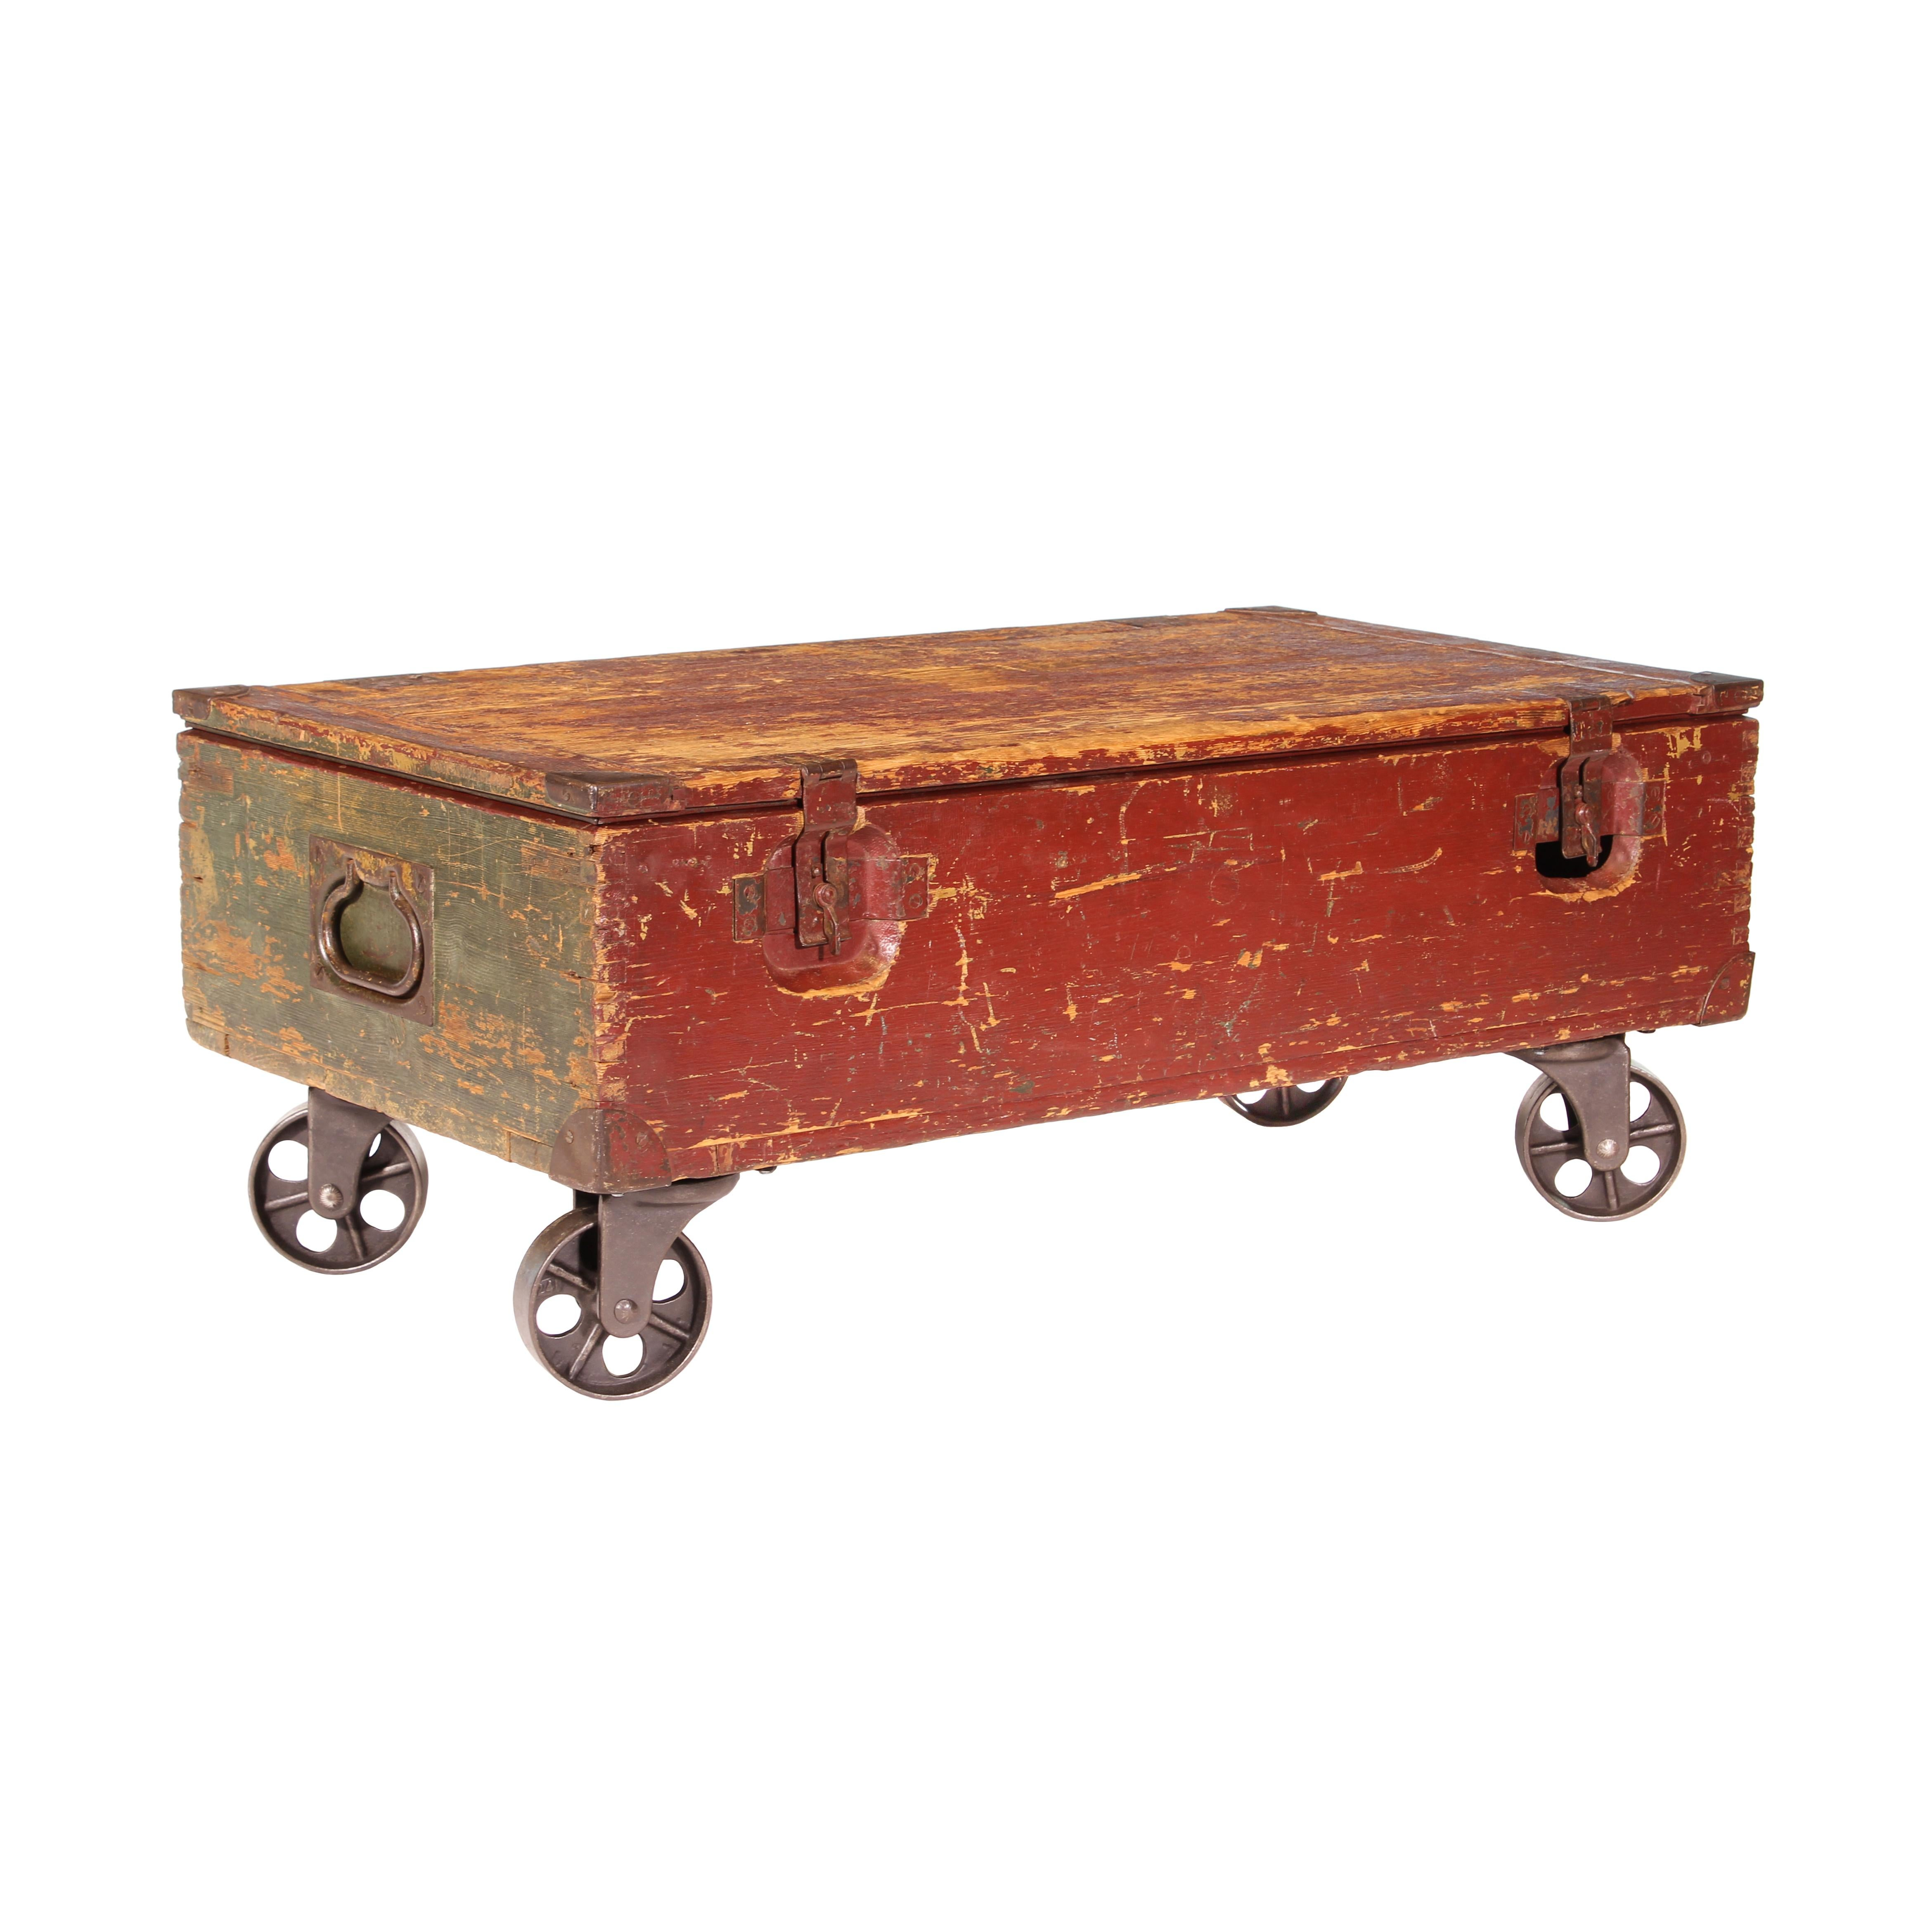 Merveilleux Vintage Industrial Wooden Toy Trunk Coffee Table On Castors For Sale